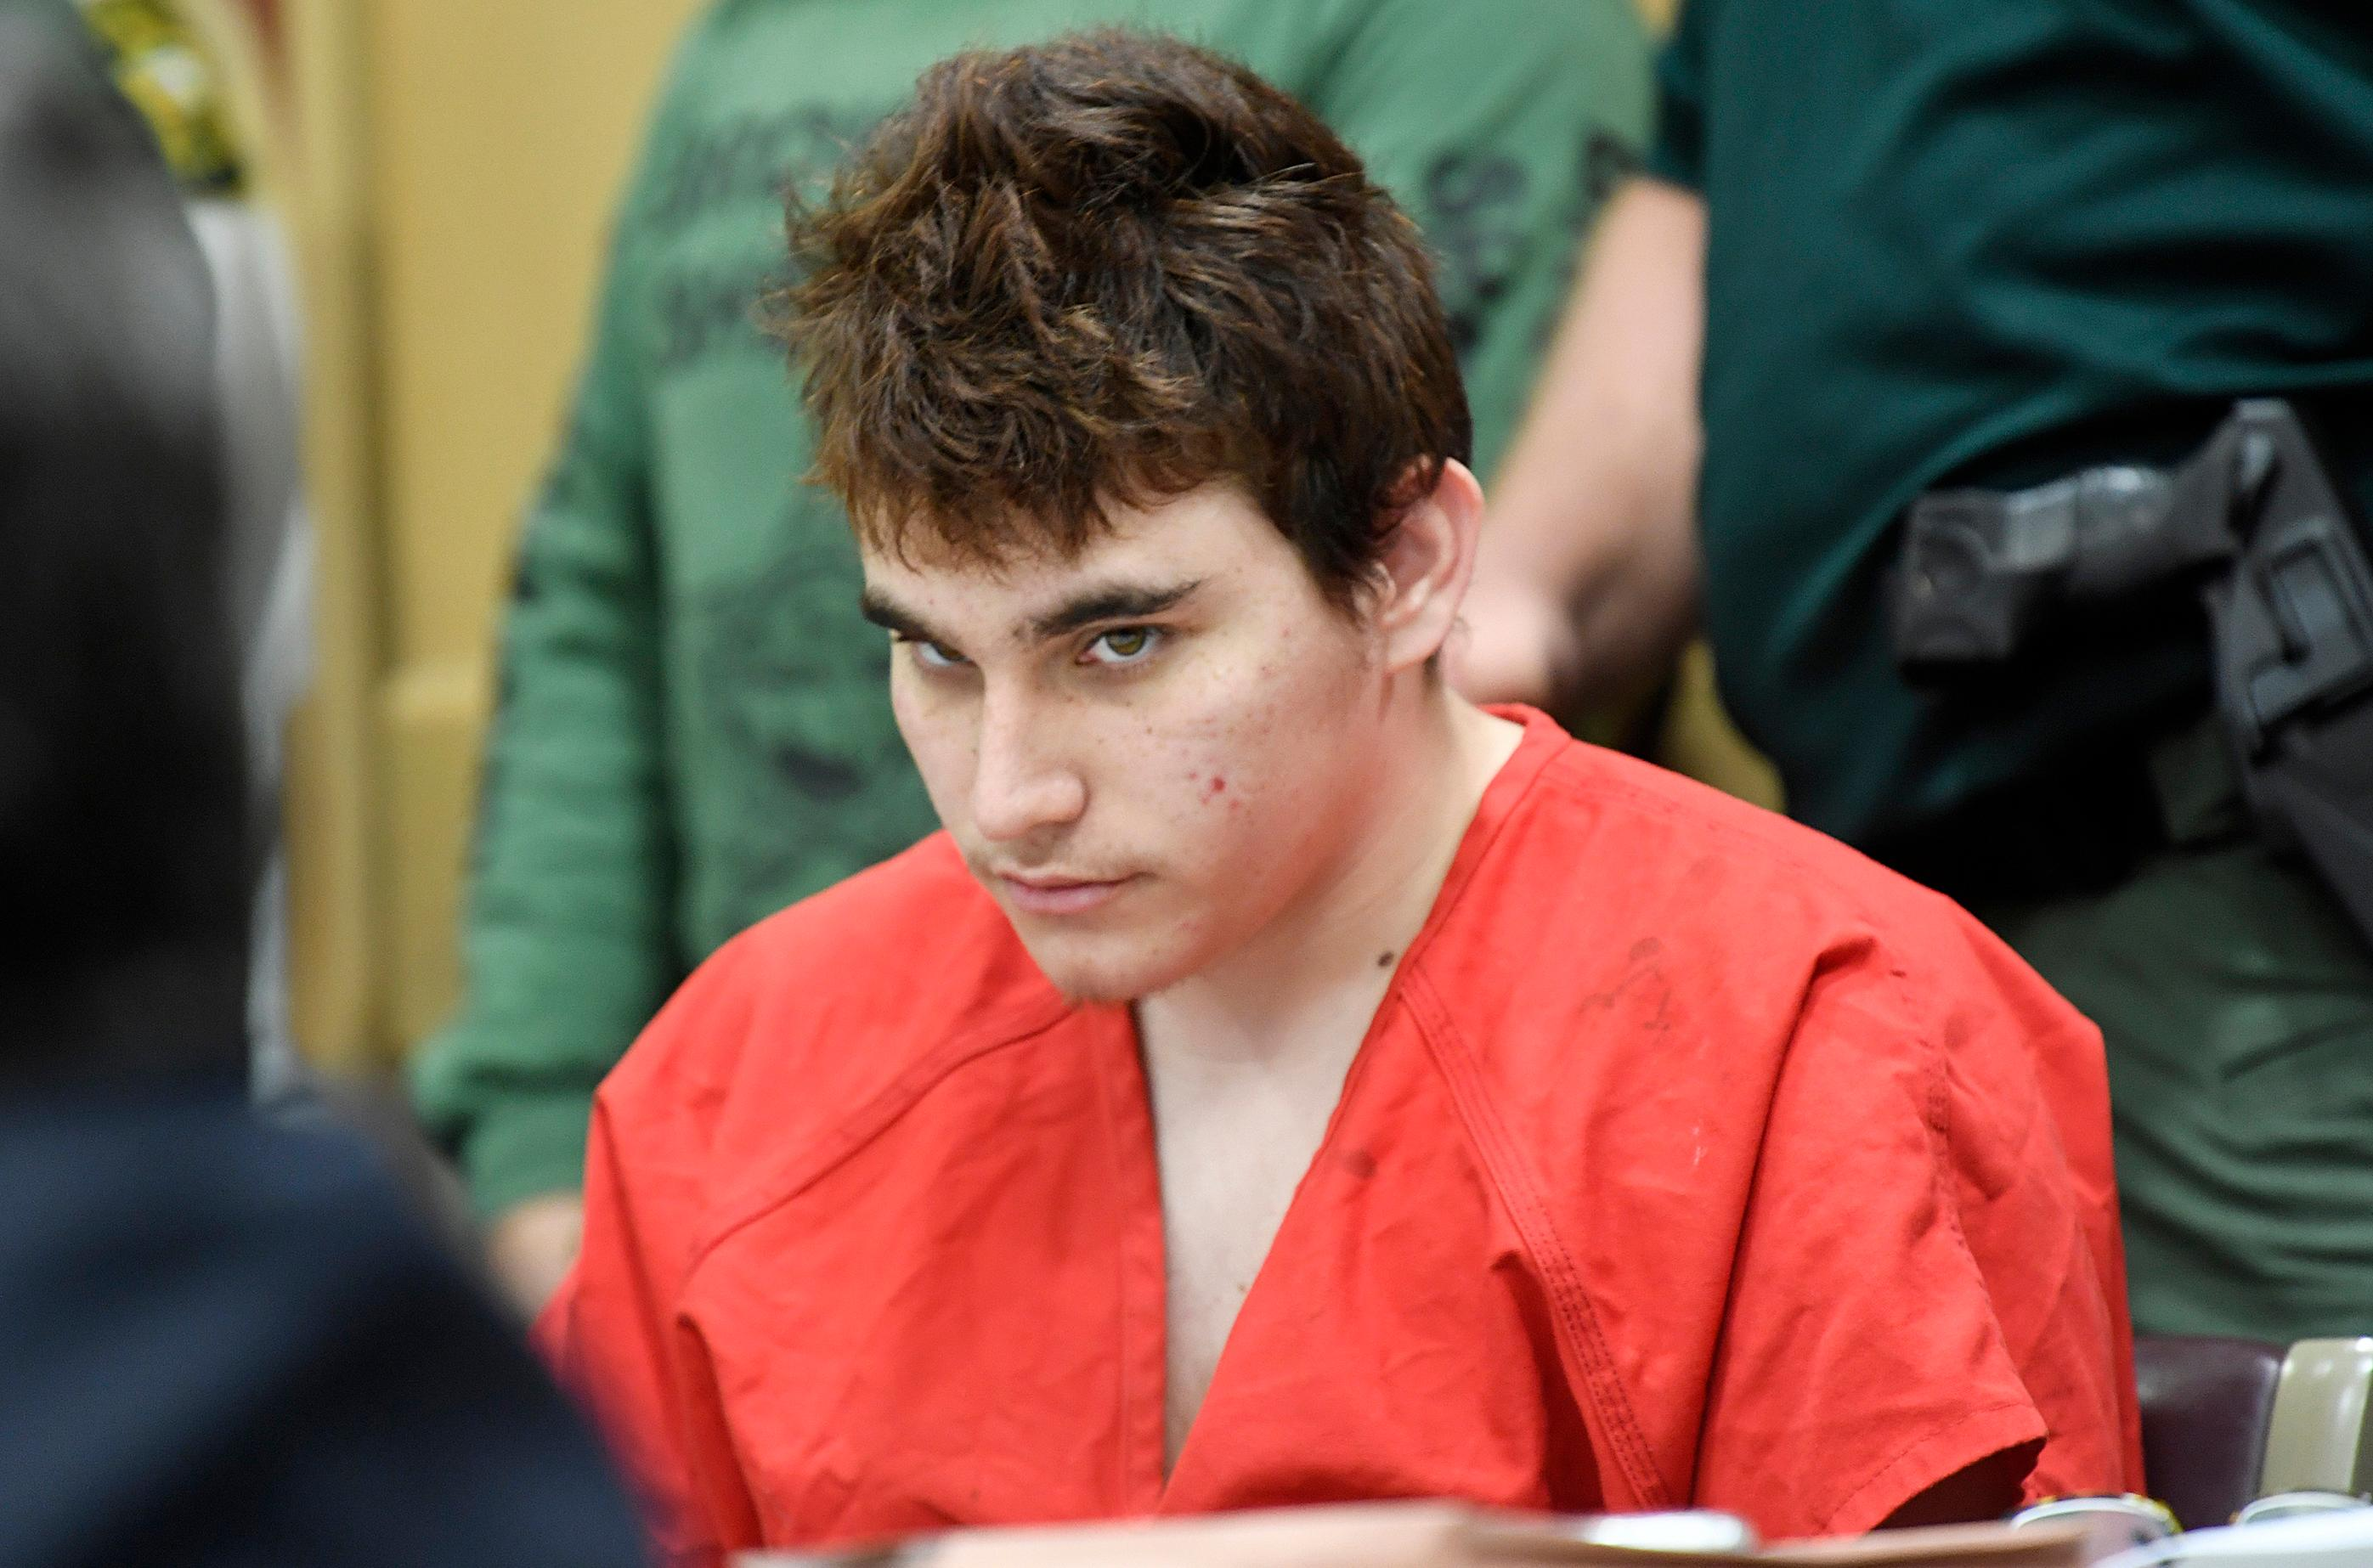 FILE- Florida school shooting suspect Nikolas Cruz, looks up while in court for a hearing in Fort Lauderdale, Fla., Friday, April 27, 2018.{ } (Taimy Alvarez/South Florida Sun-Sentinel via AP, Pool)